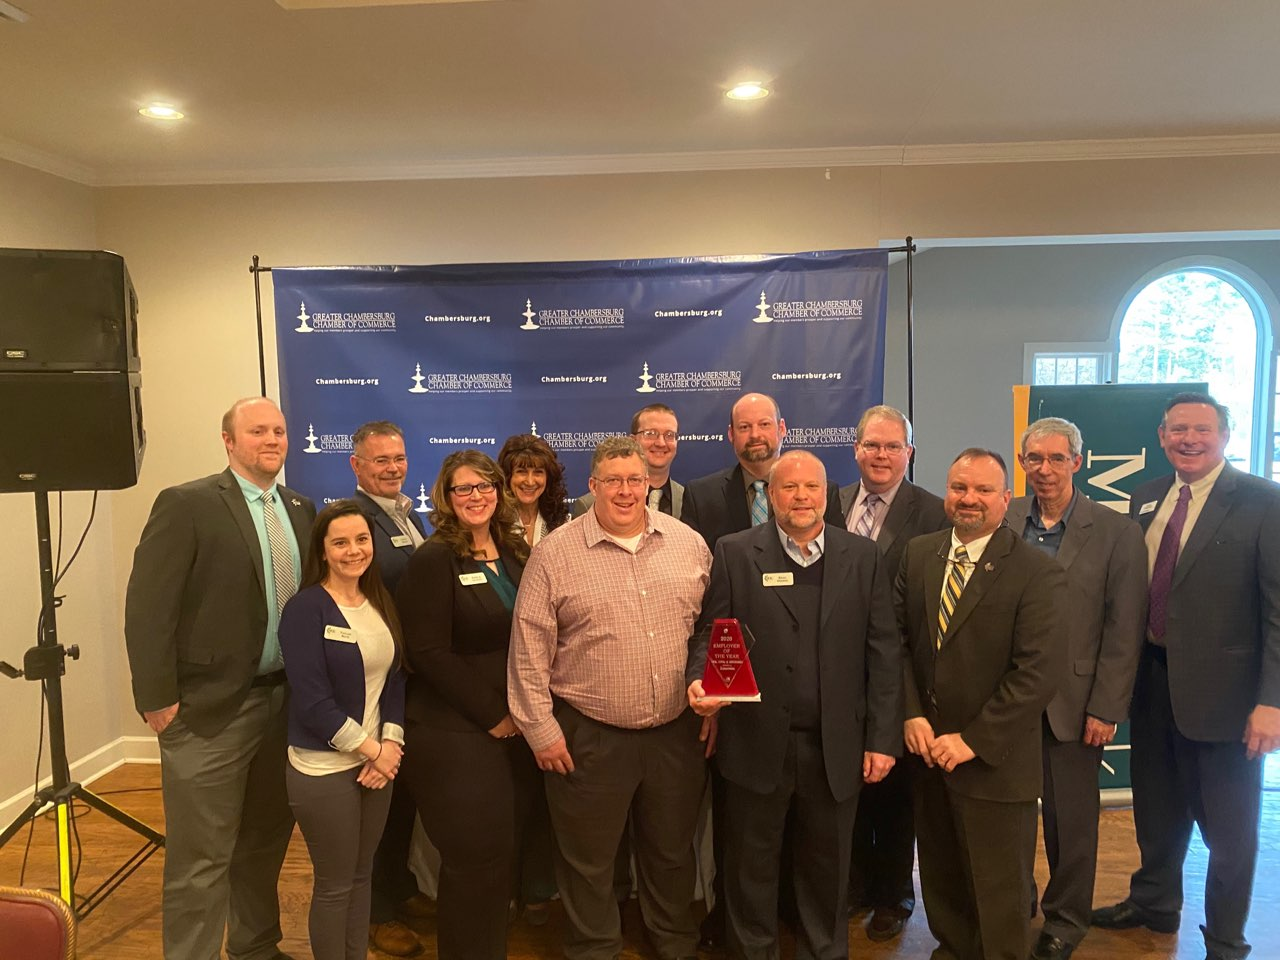 SEK accepts their Employer of the Year Award